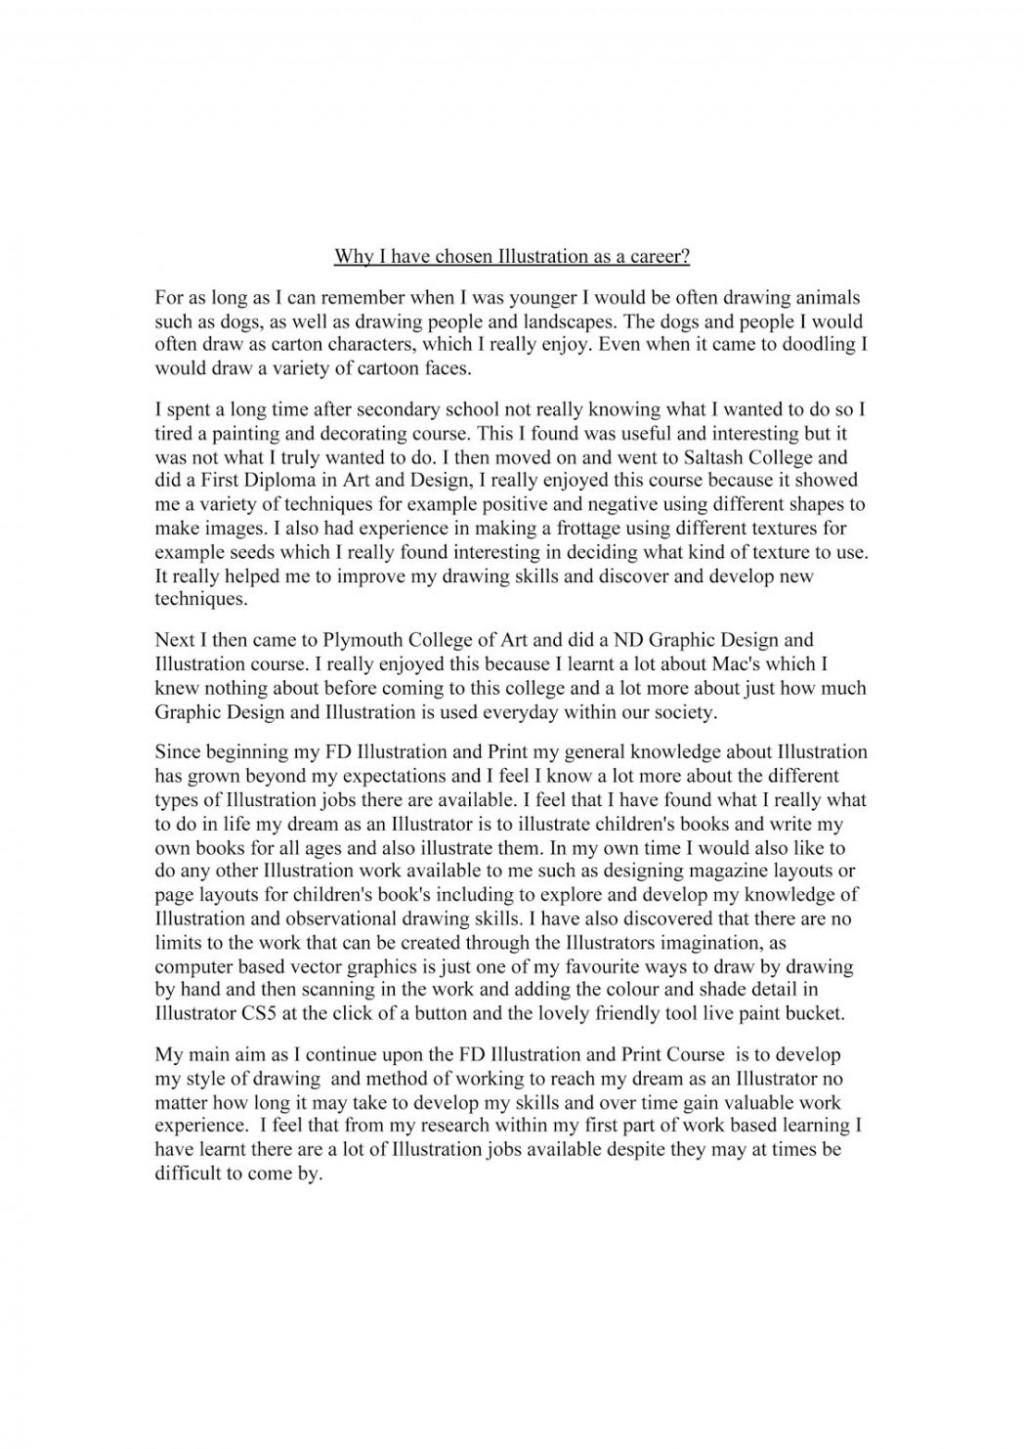 007 Lyric Essay Examples Creative Nonficti Fidm Example Awesome Large